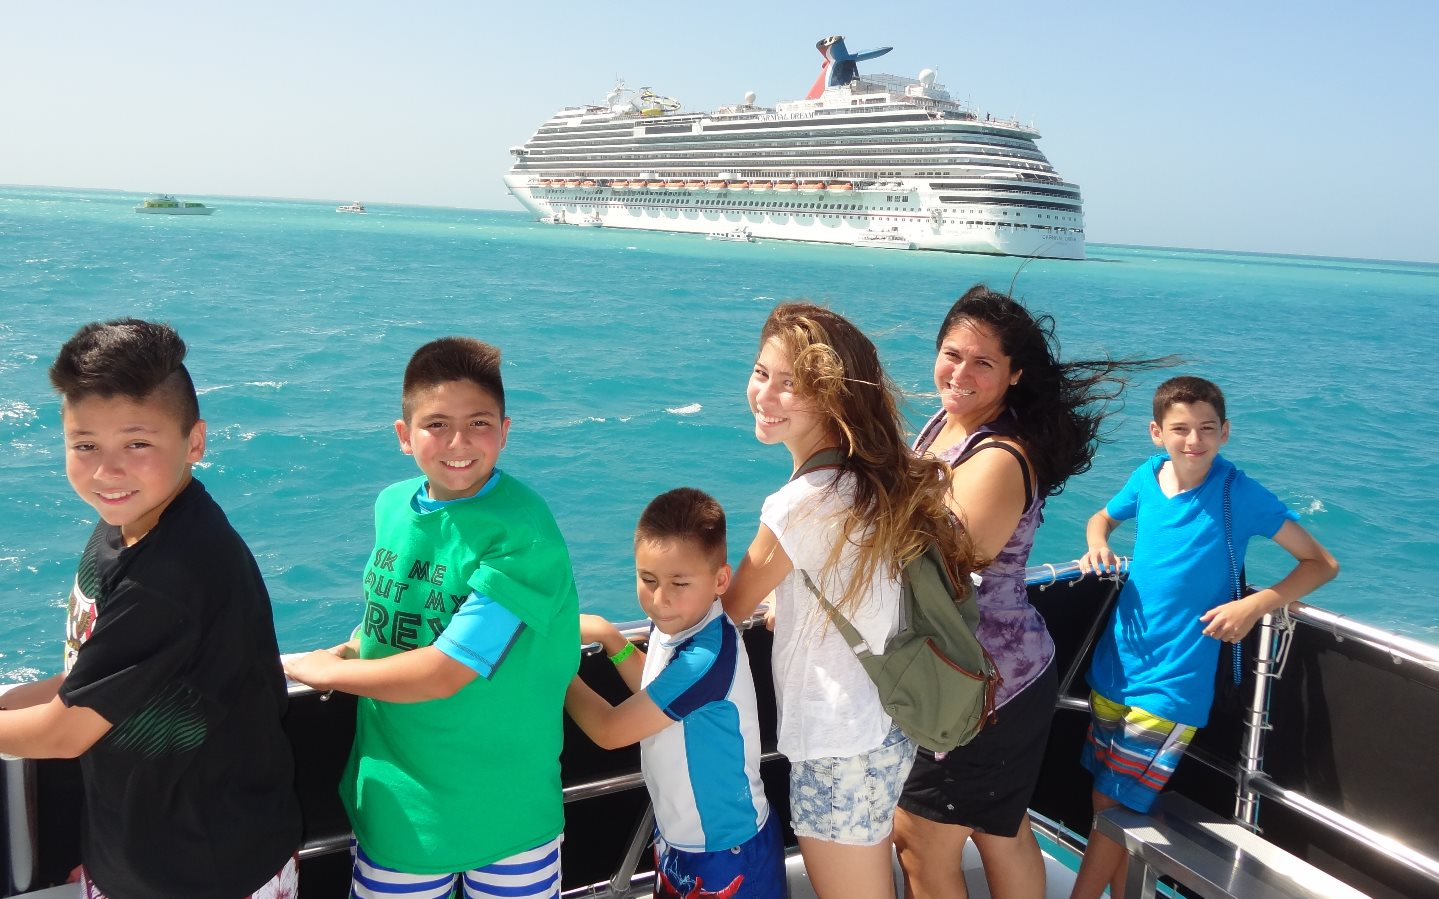 2014 Boat ride to Belize